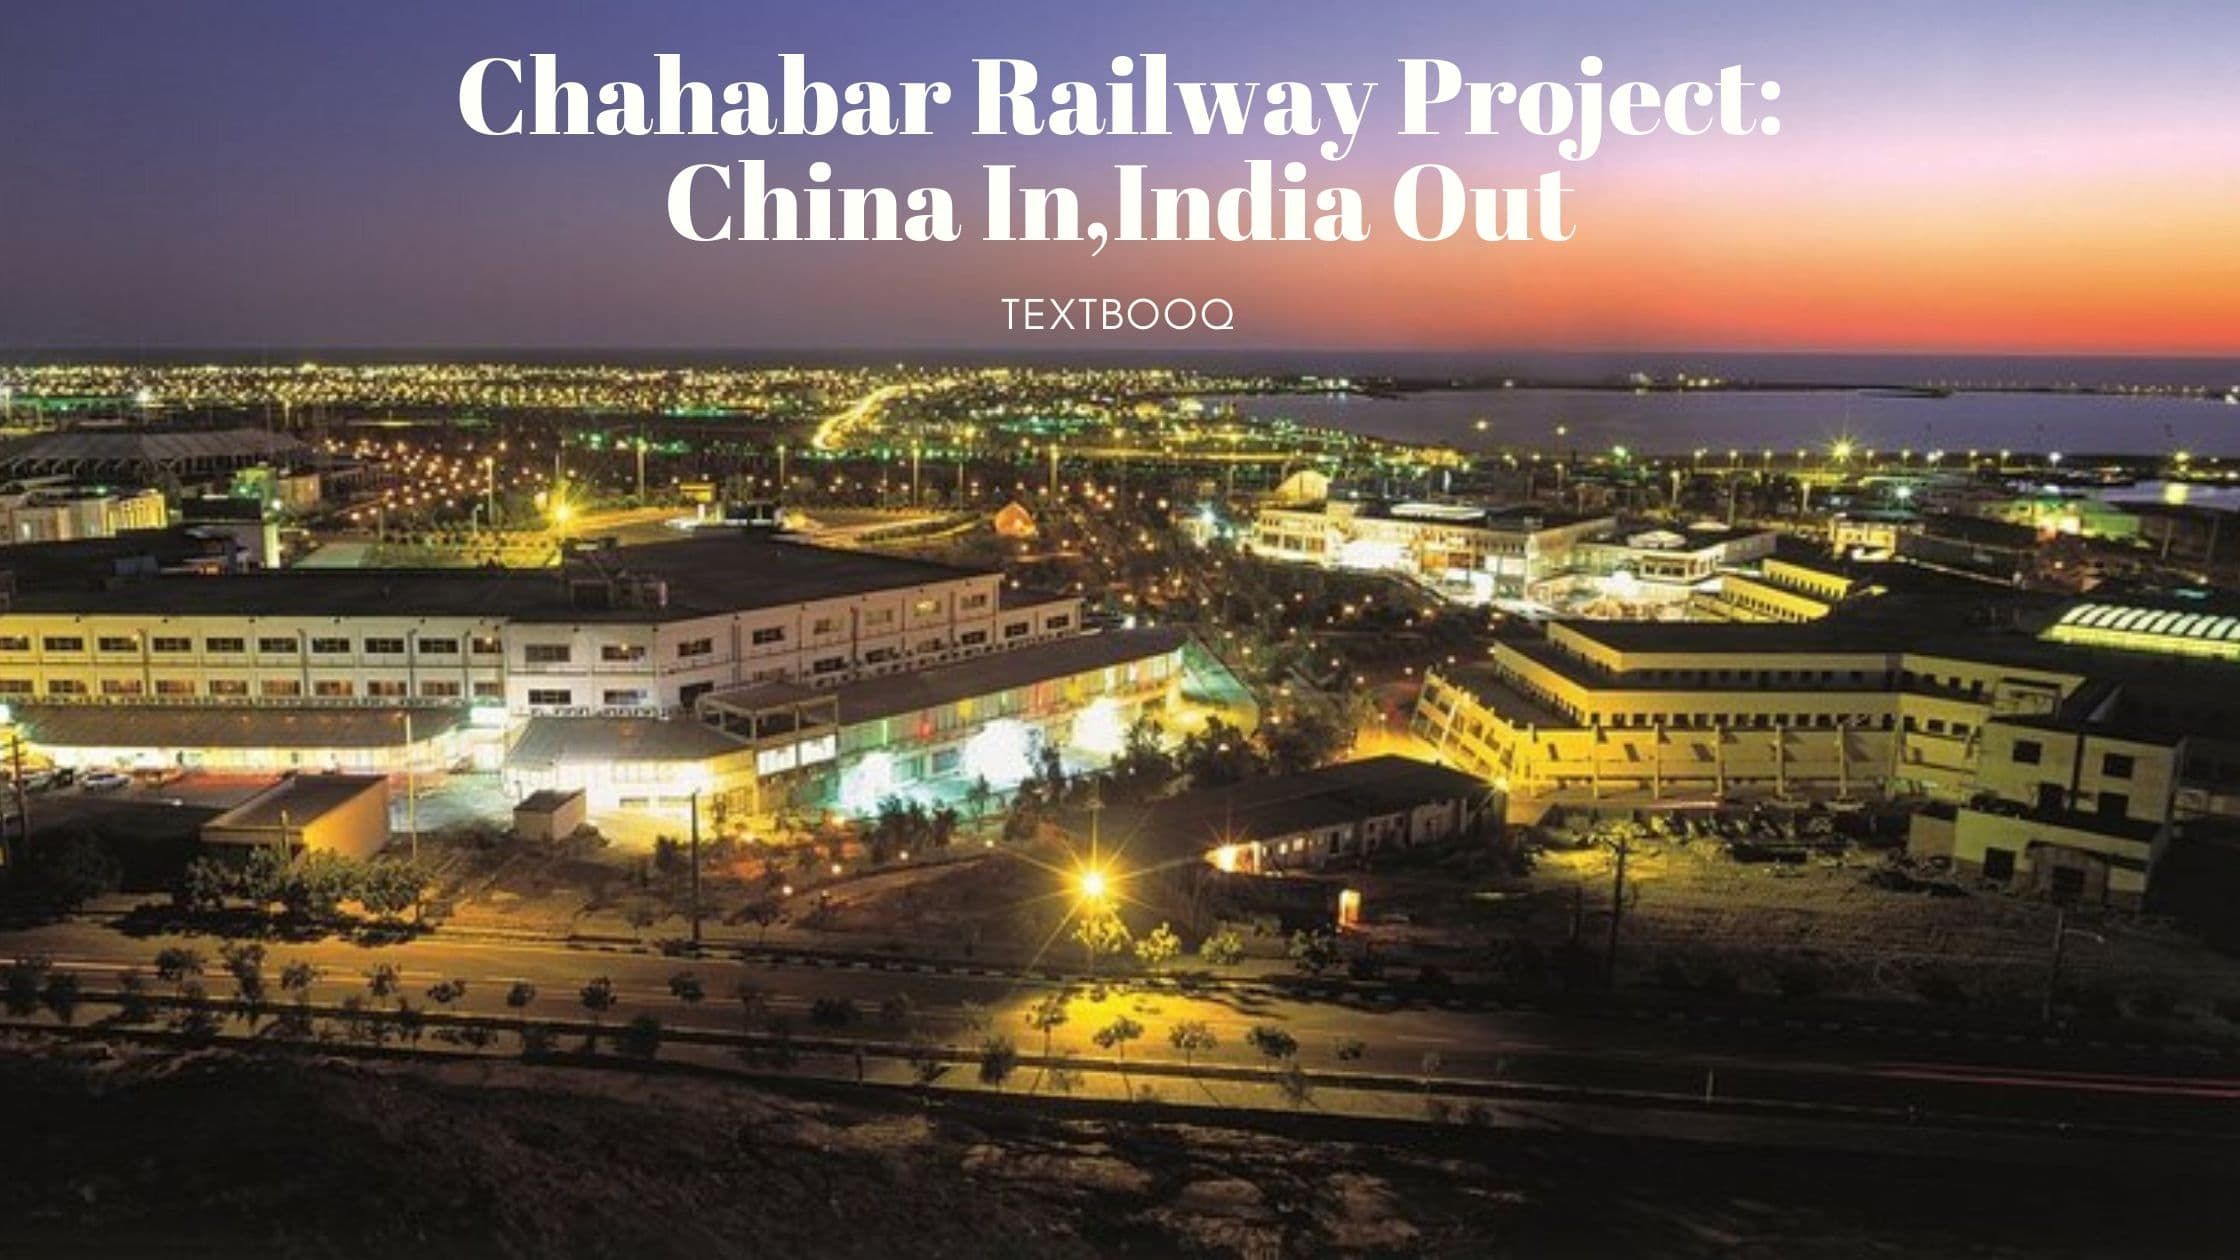 Chahabar Railway Project: China In India Out